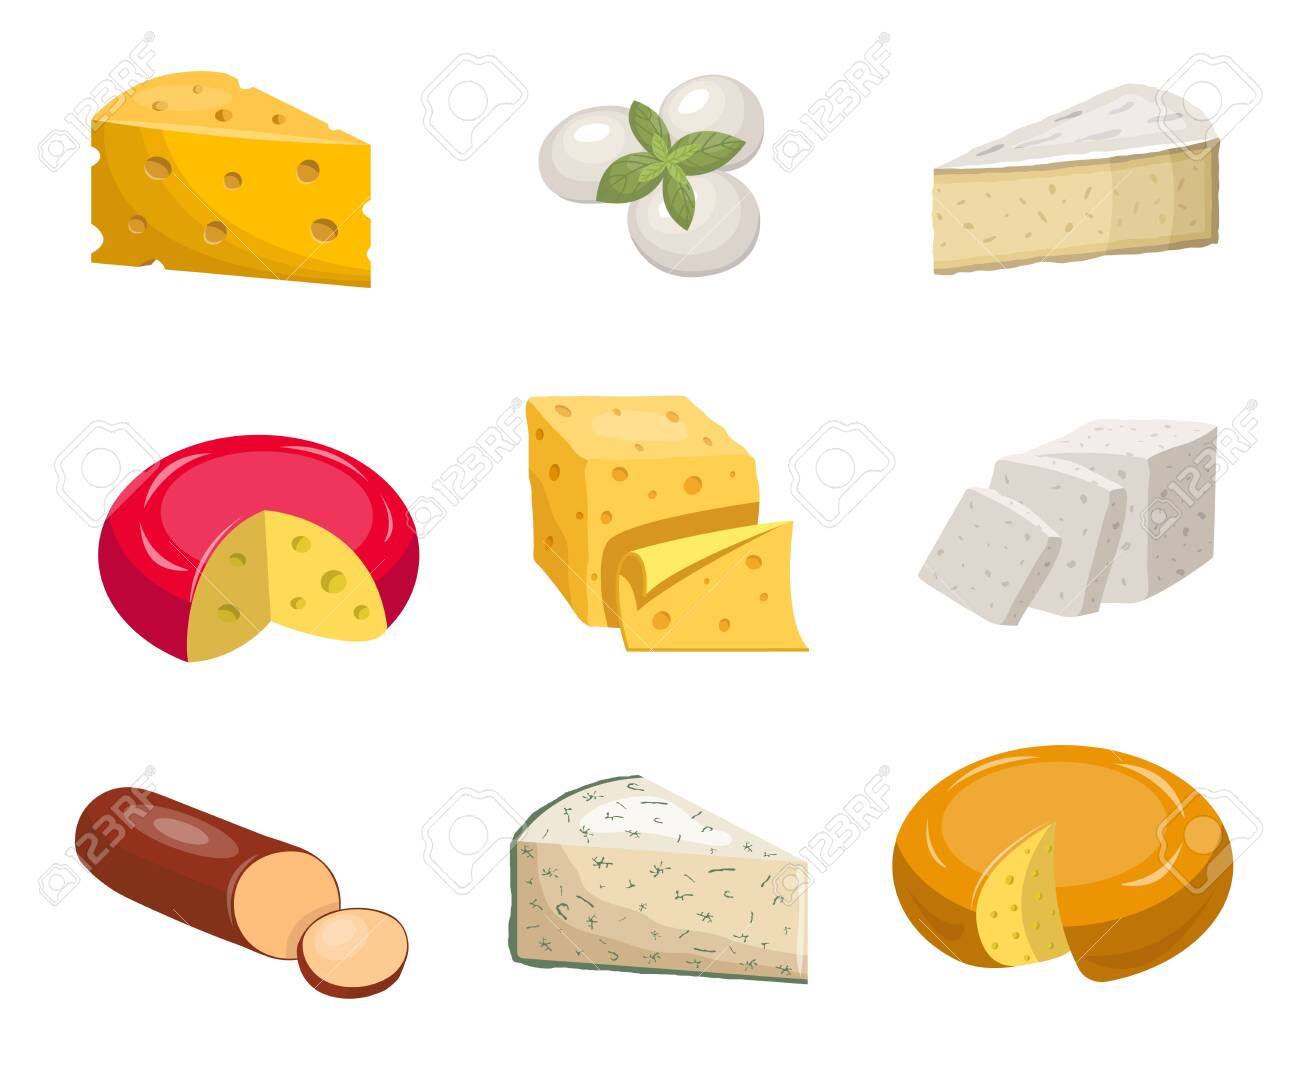 Cheese set. Yellow piece cheddar oval white mozzarella gouda slice blue mold roquefort smoked sausage chees slice vegetarian toffu feta, goat milk camembert. Fragrant color vector clipart. - 147106400